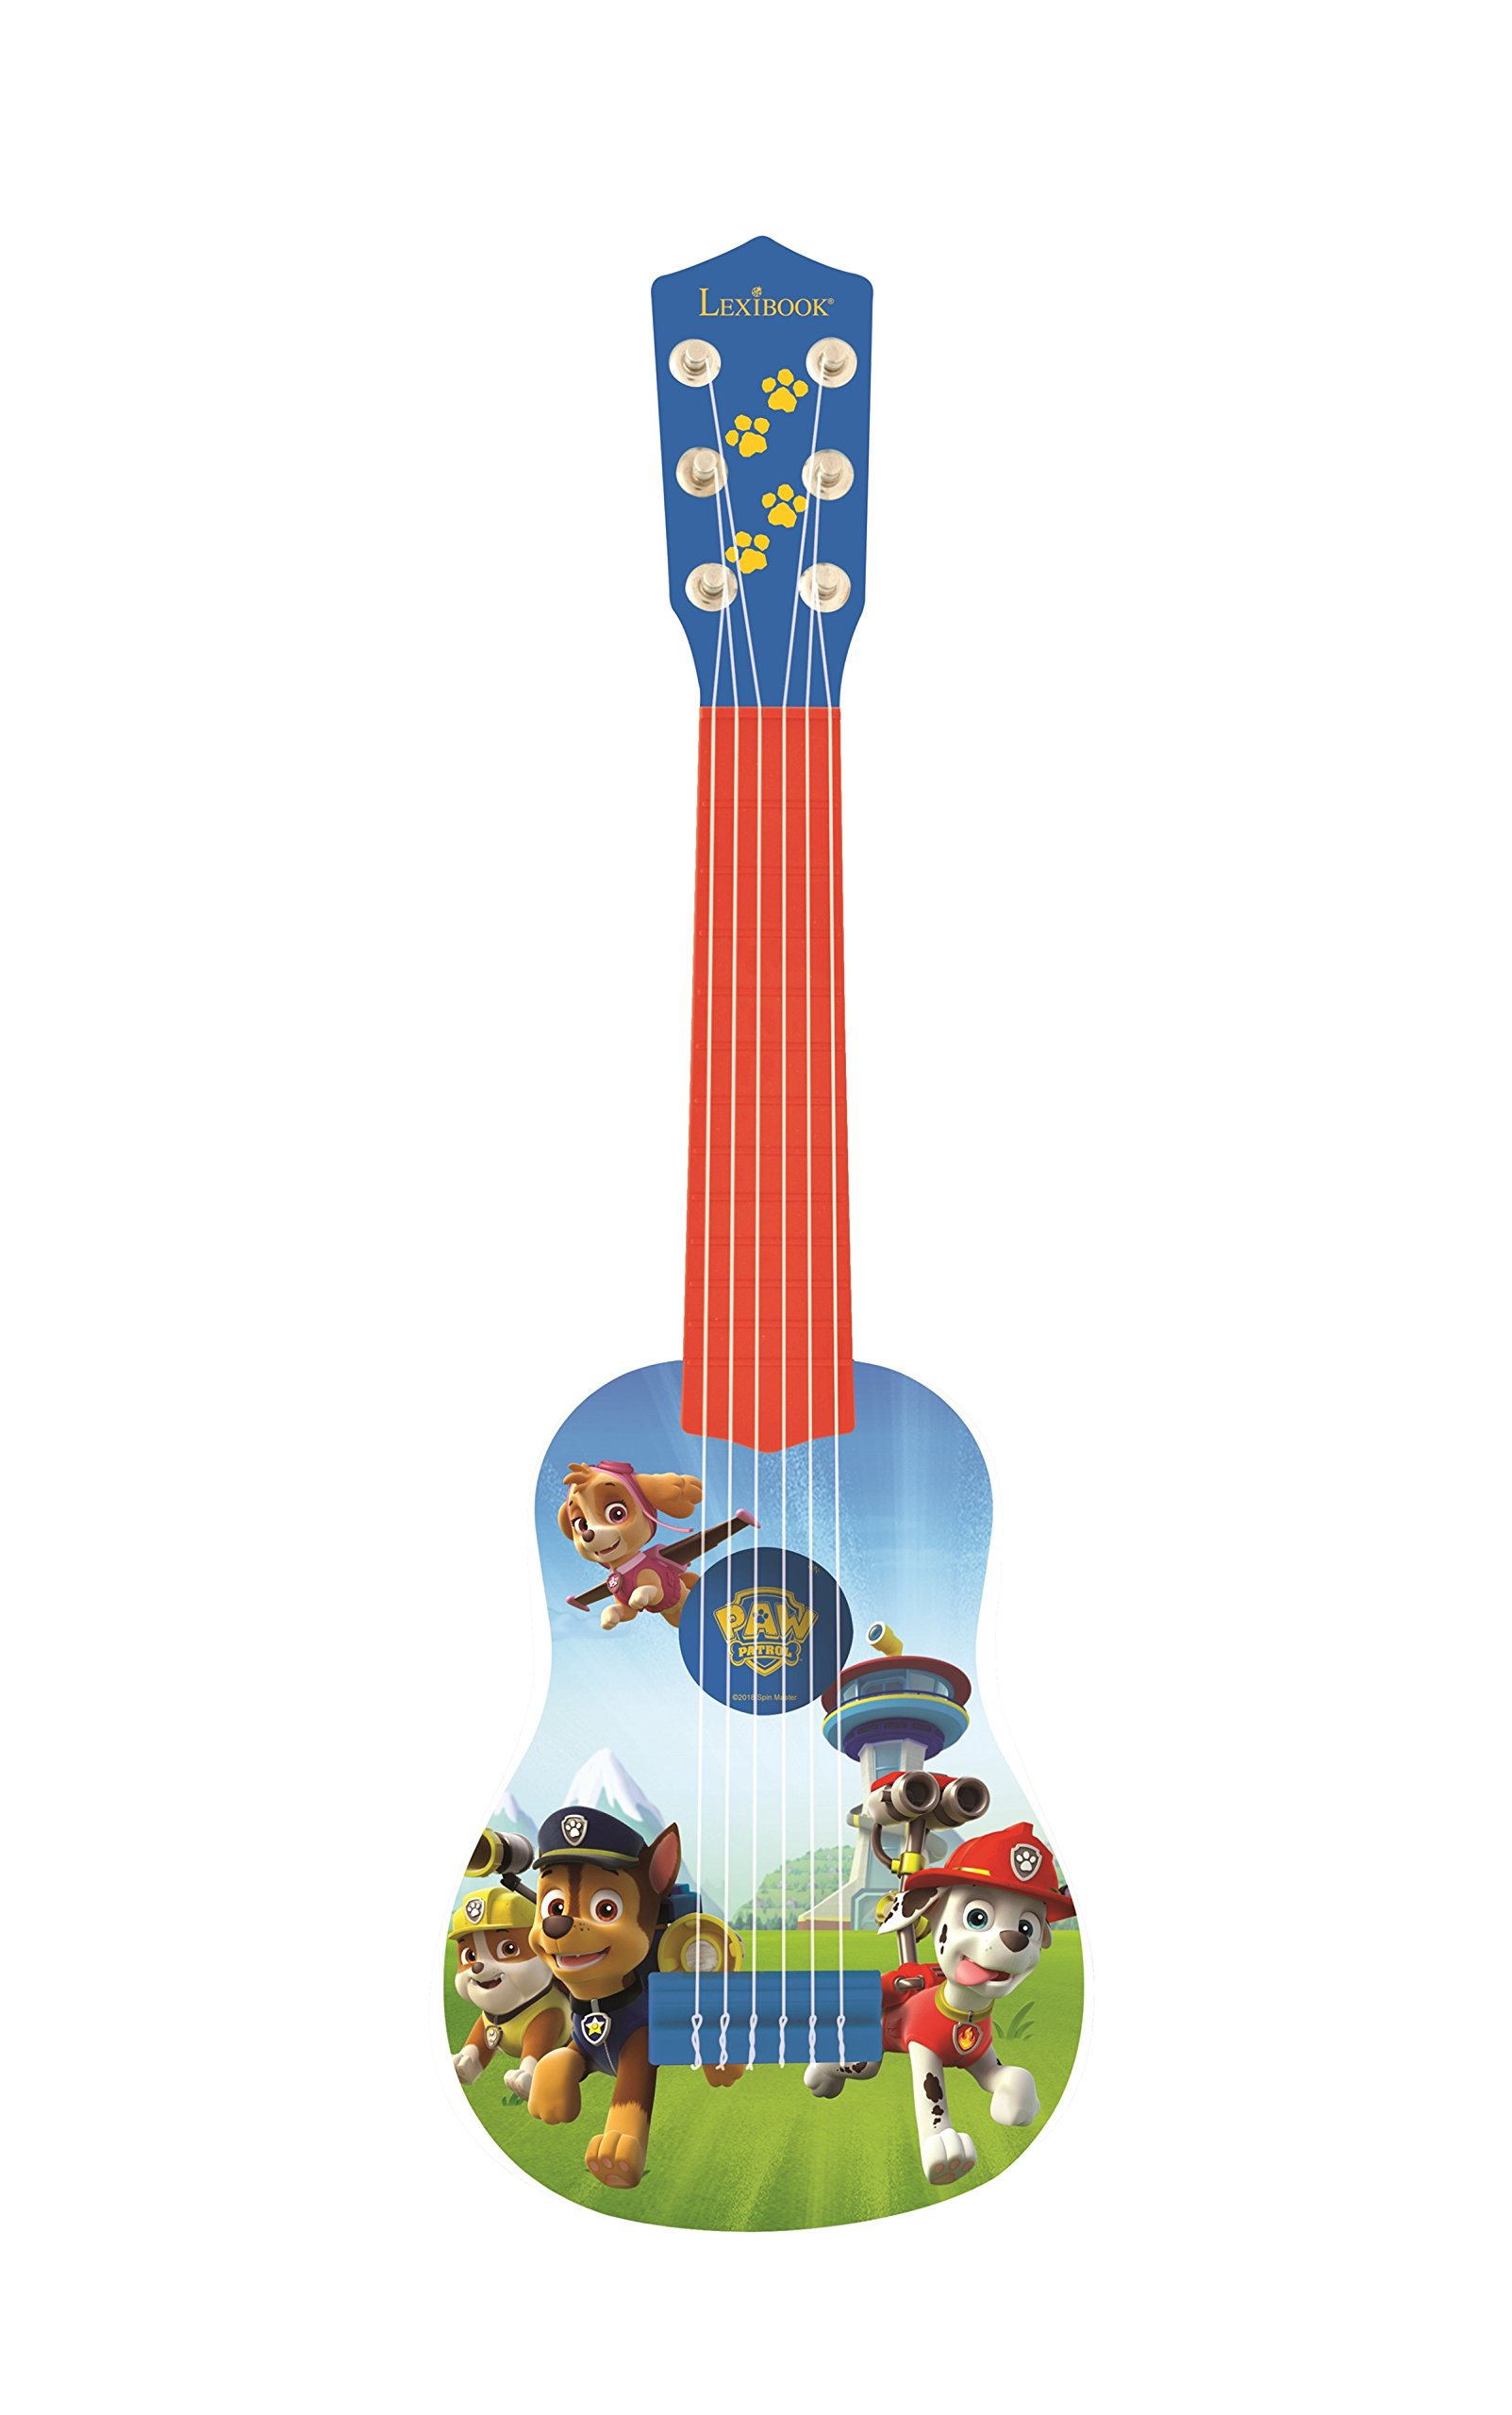 LEXiBOOK Paw Patrol Chase My First Guitar, 6 Nylon Strings, 53 cm, Guide Included, Blue / Red, K200PA